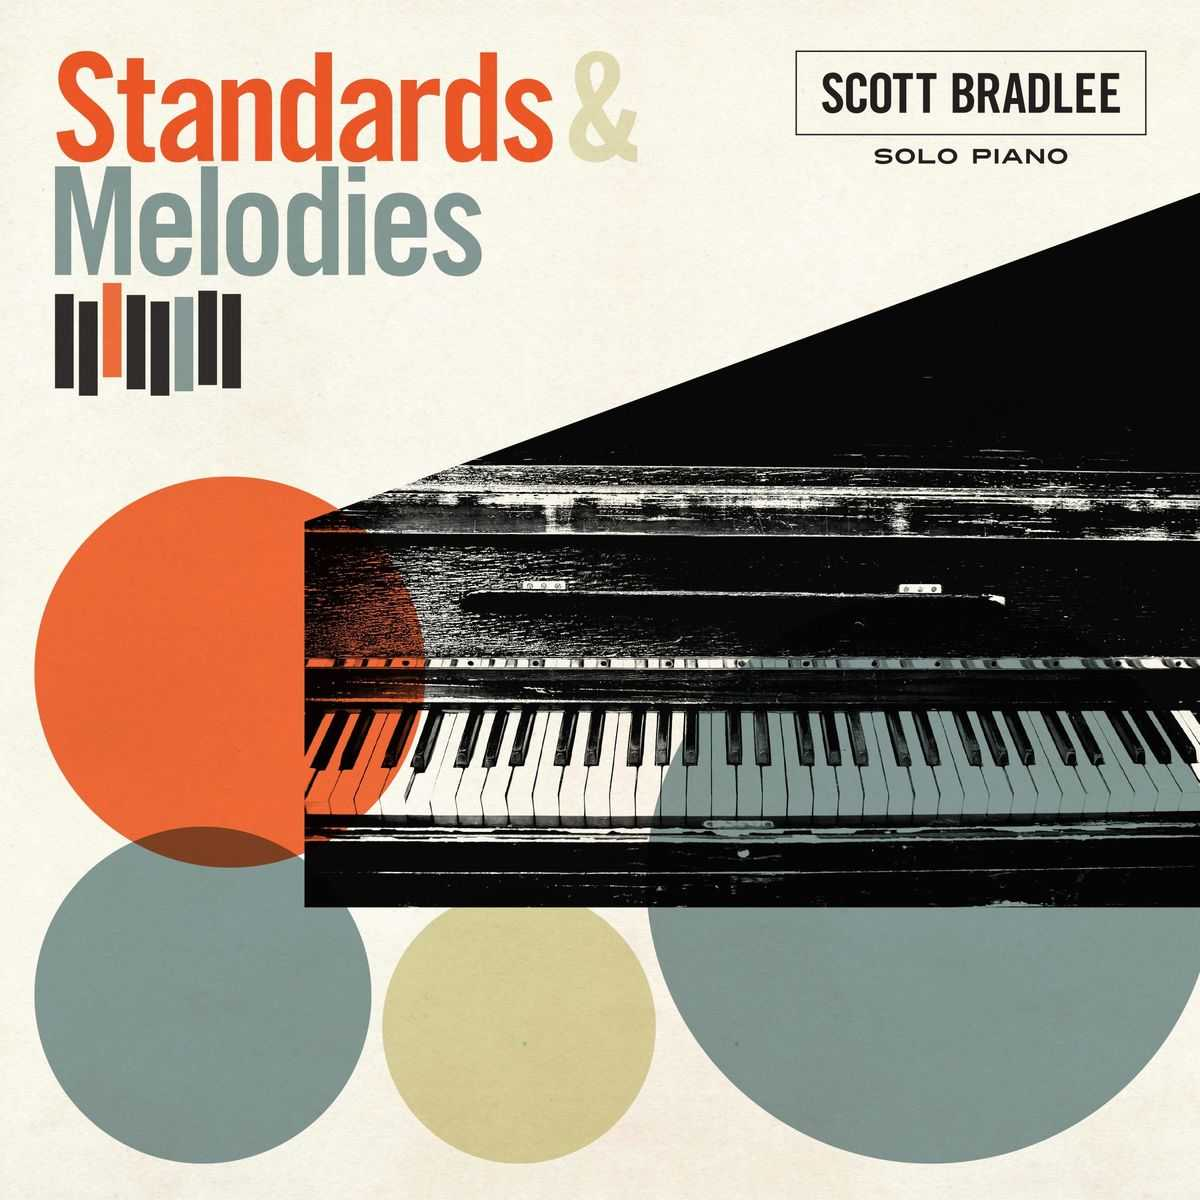 Scott Bradlee - Standards & Melodies